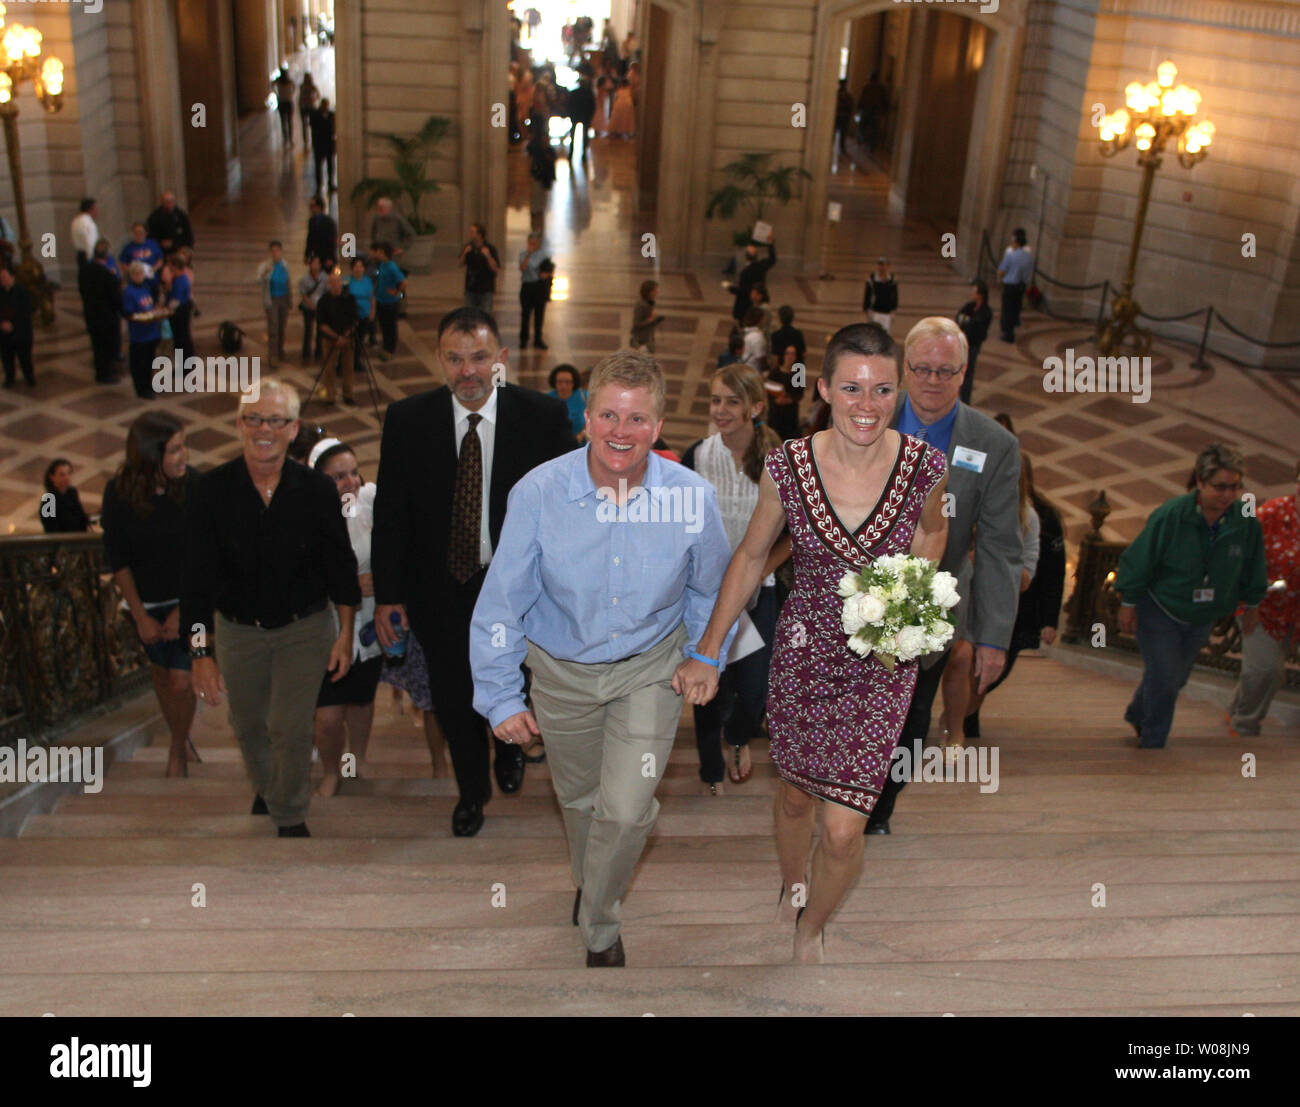 A couple to be married ascends the steps of City Hall in San Francisco on June 17, 2008. City Hall has become a non-stop marriage machine as gay weddings are now legal in California.  (UPI Photo/Terry Schmitt) Stock Photo